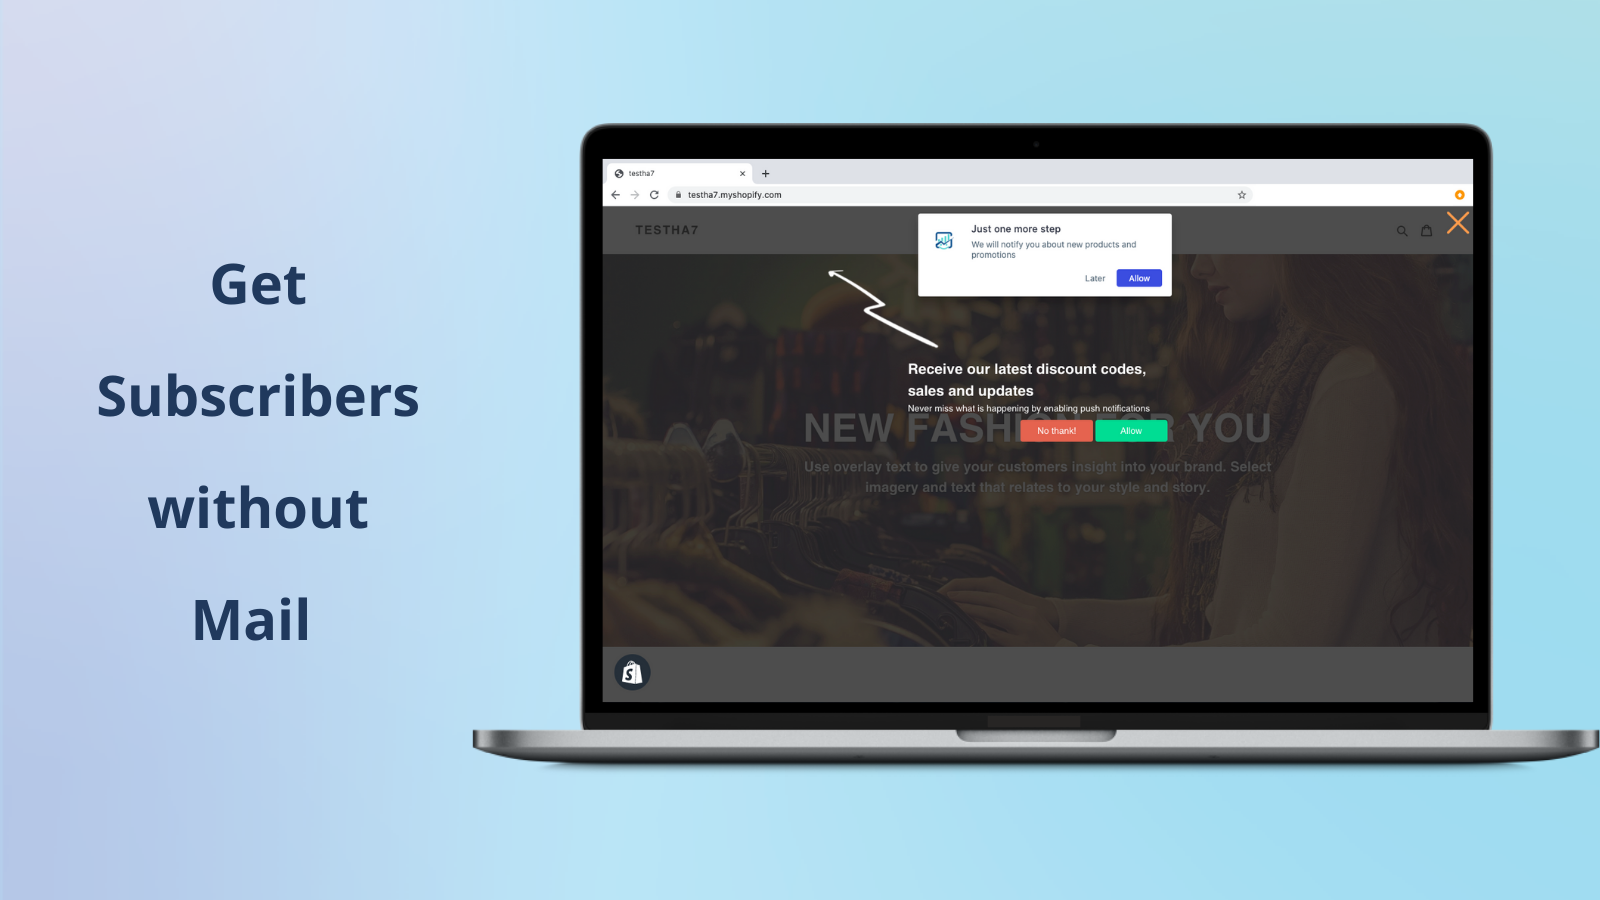 Get your new subscribers with web push notifications app